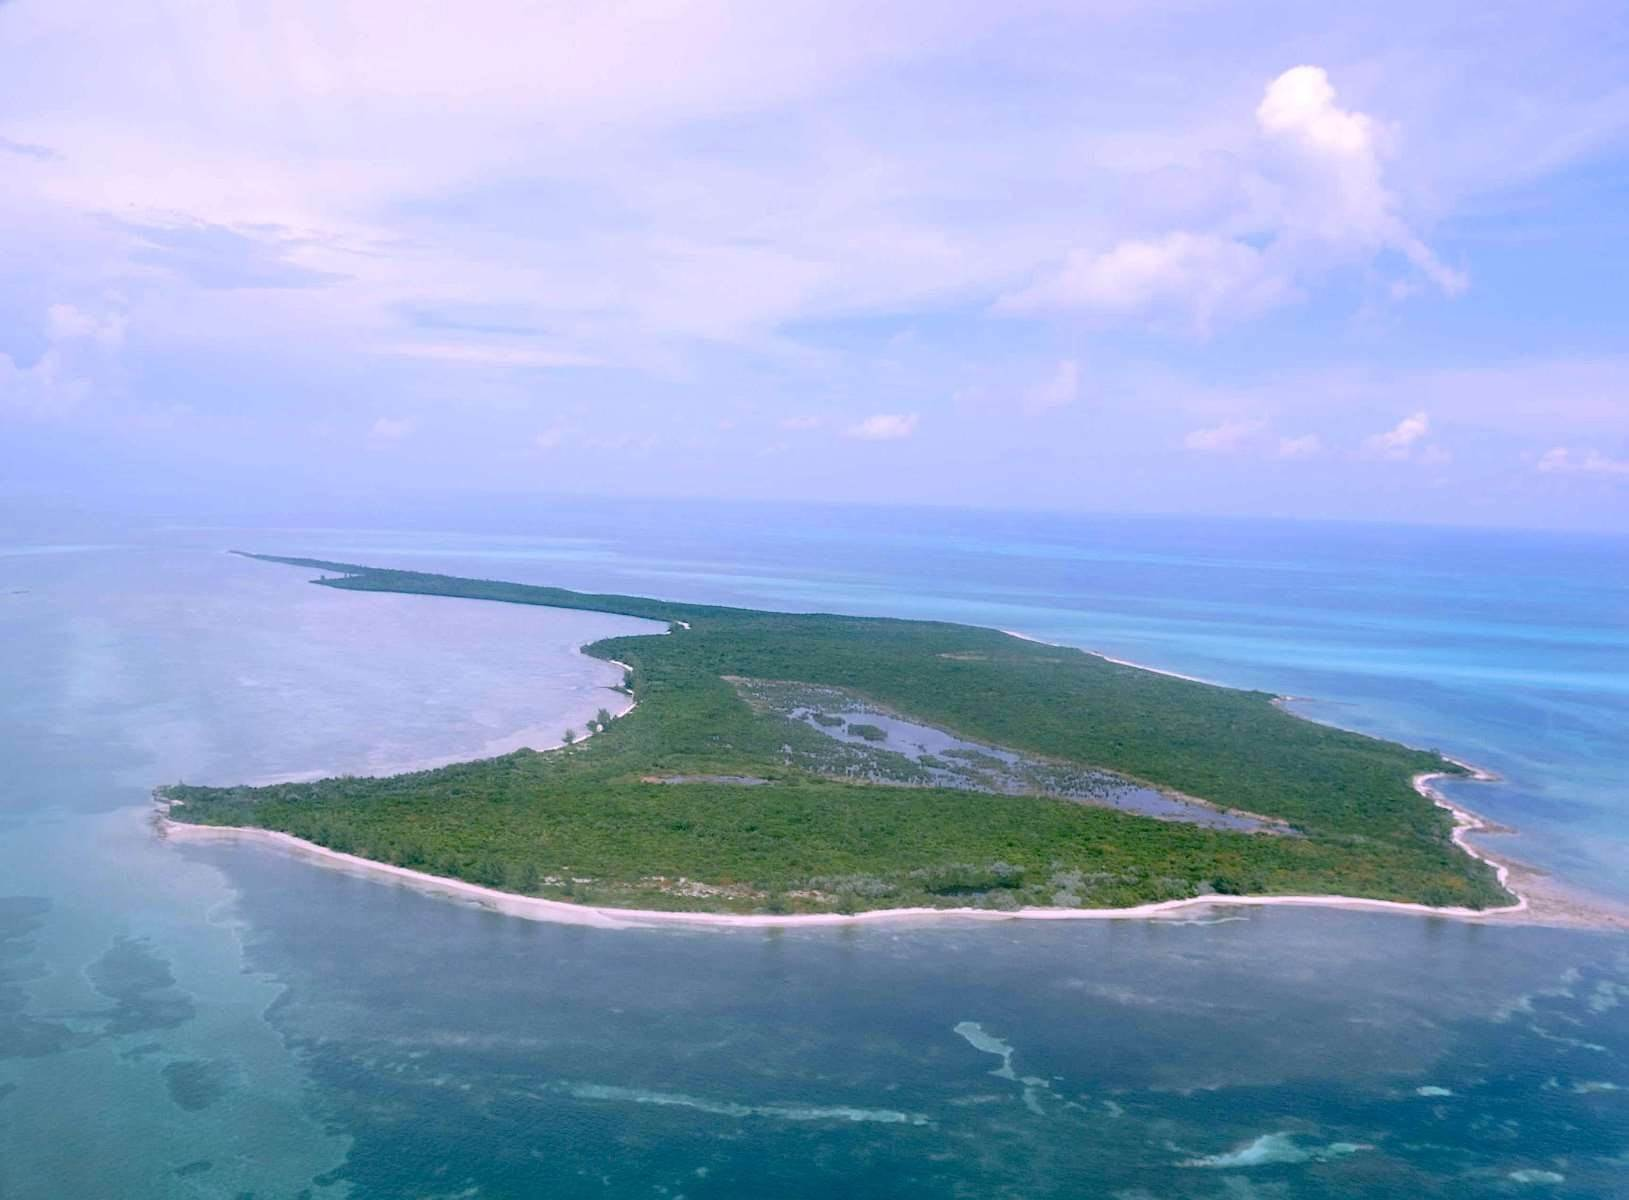 18. Private Islands por un Venta en Large Private Island in Abaco with approved development Plans - MLS 42074 Abaco, Bahamas